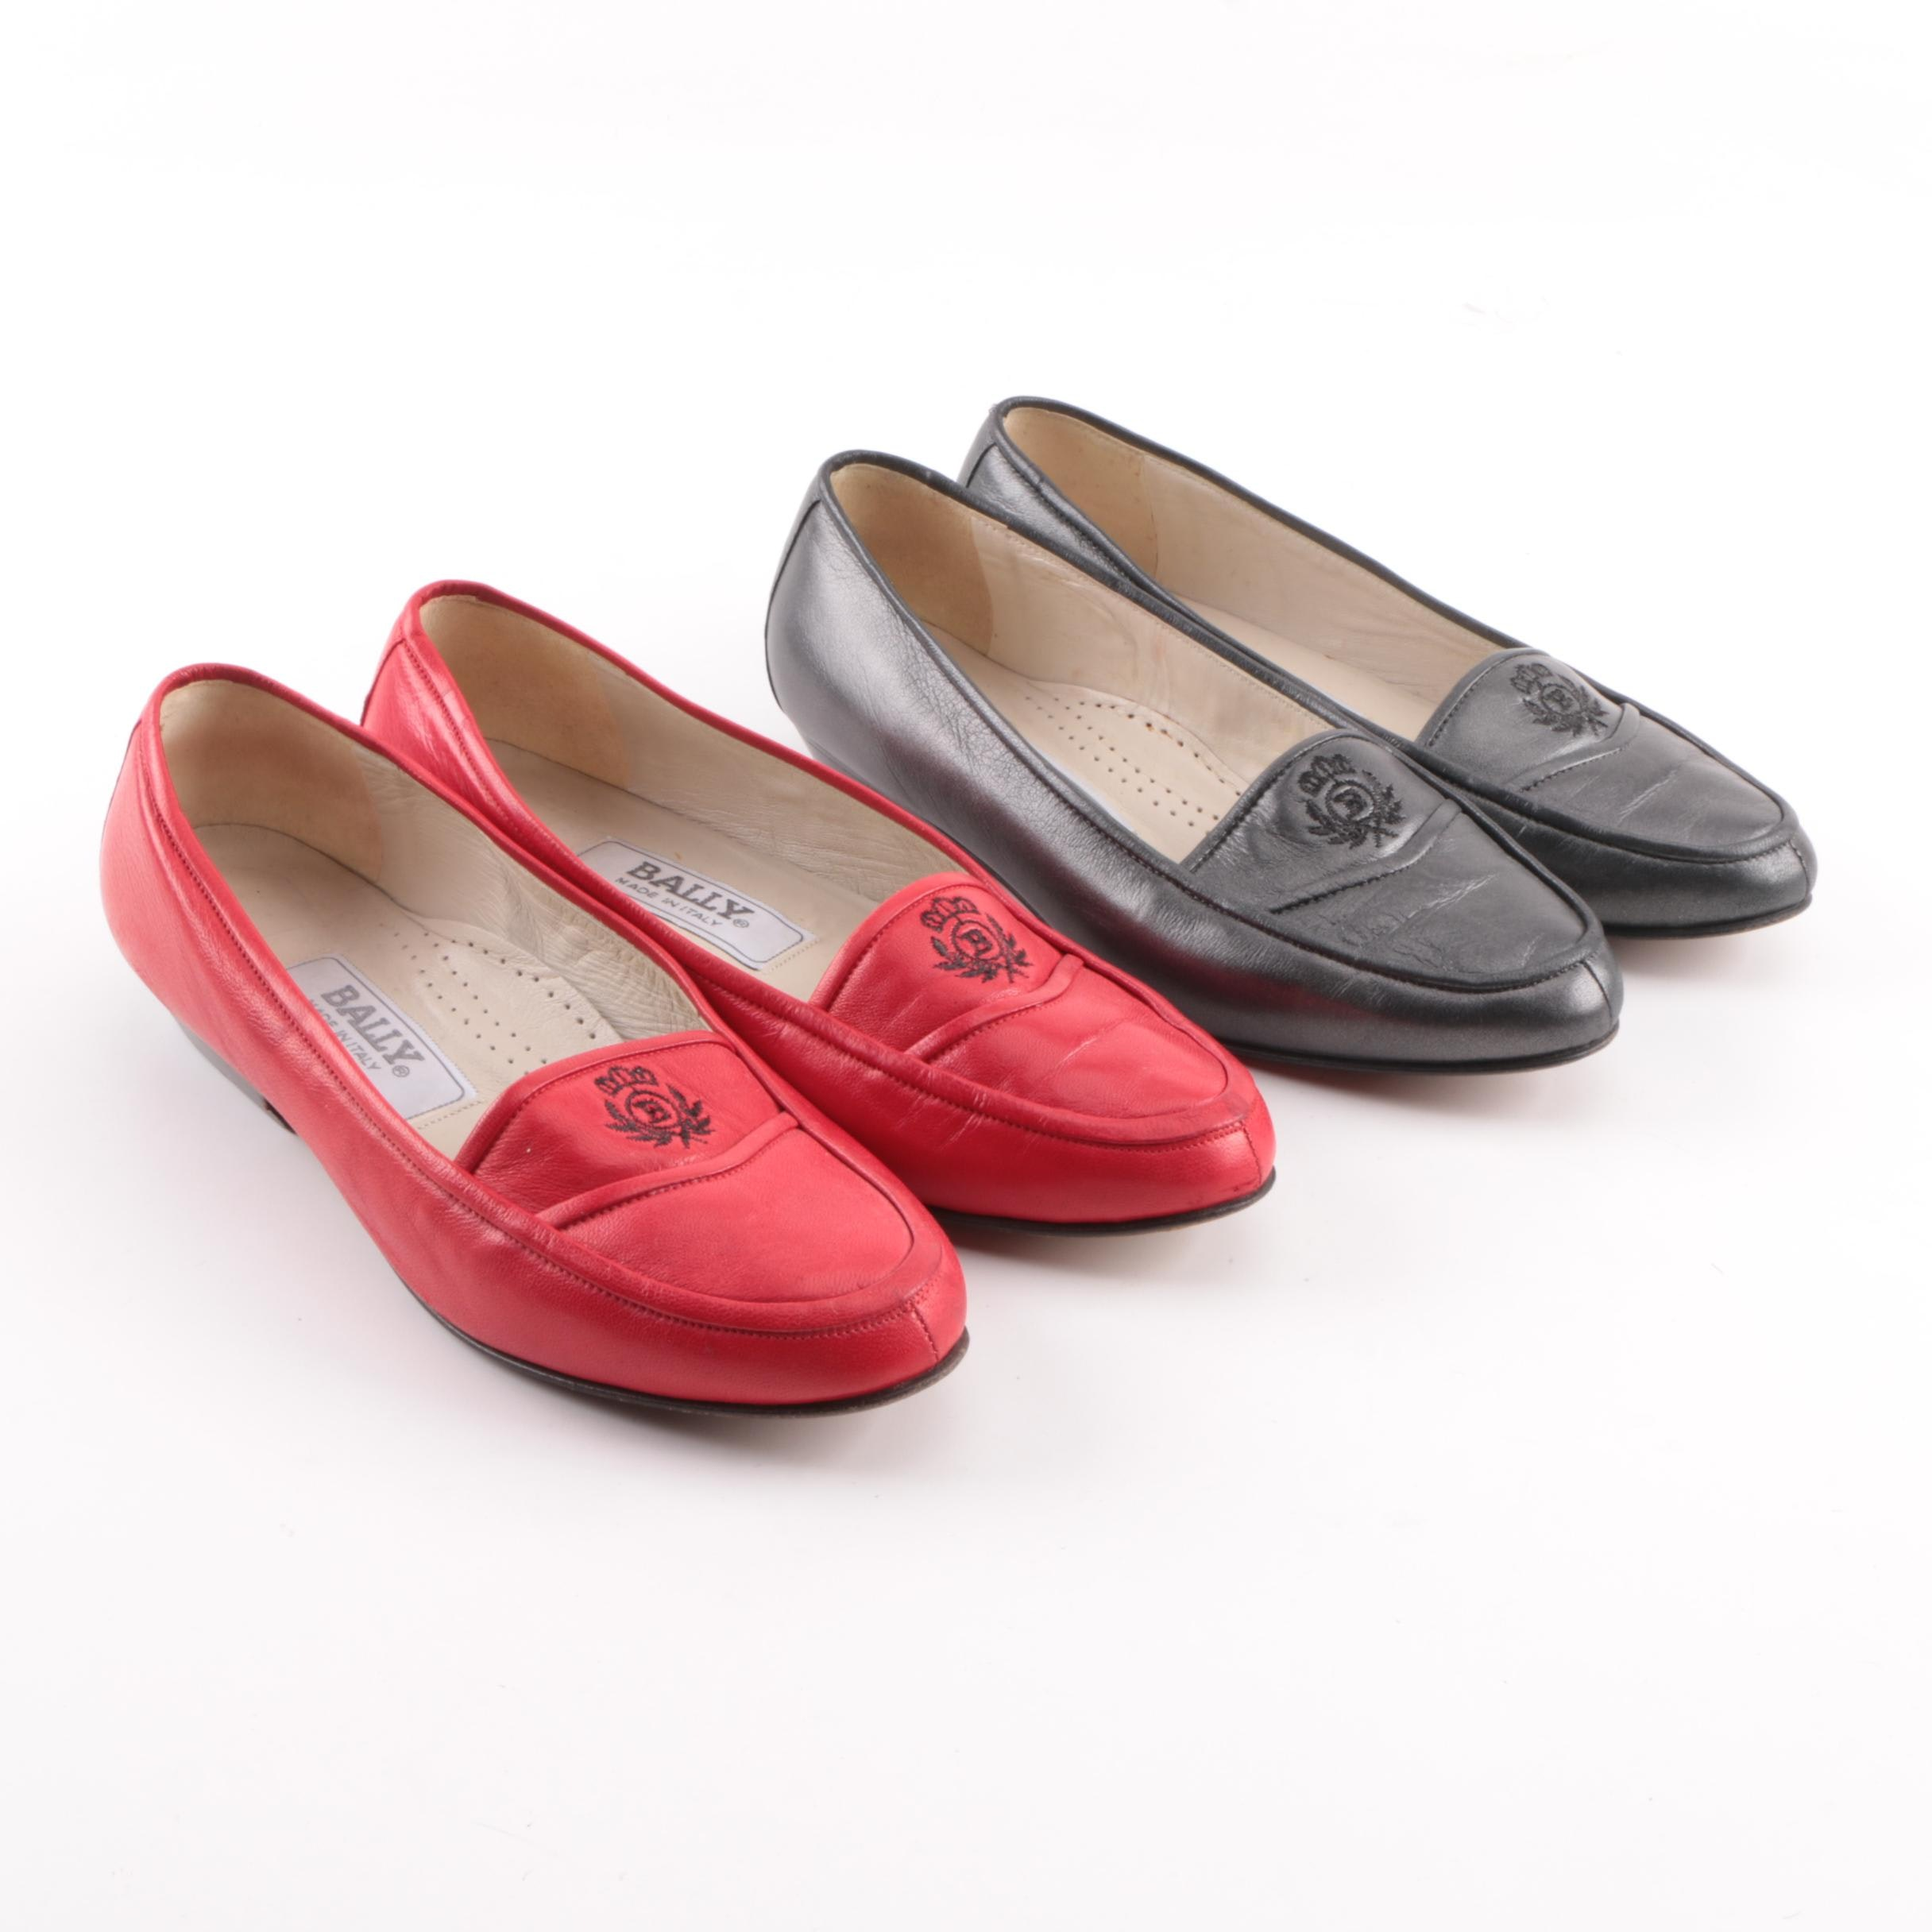 Women's Bally Red and Black Leather Loafers with Embroidered Logo